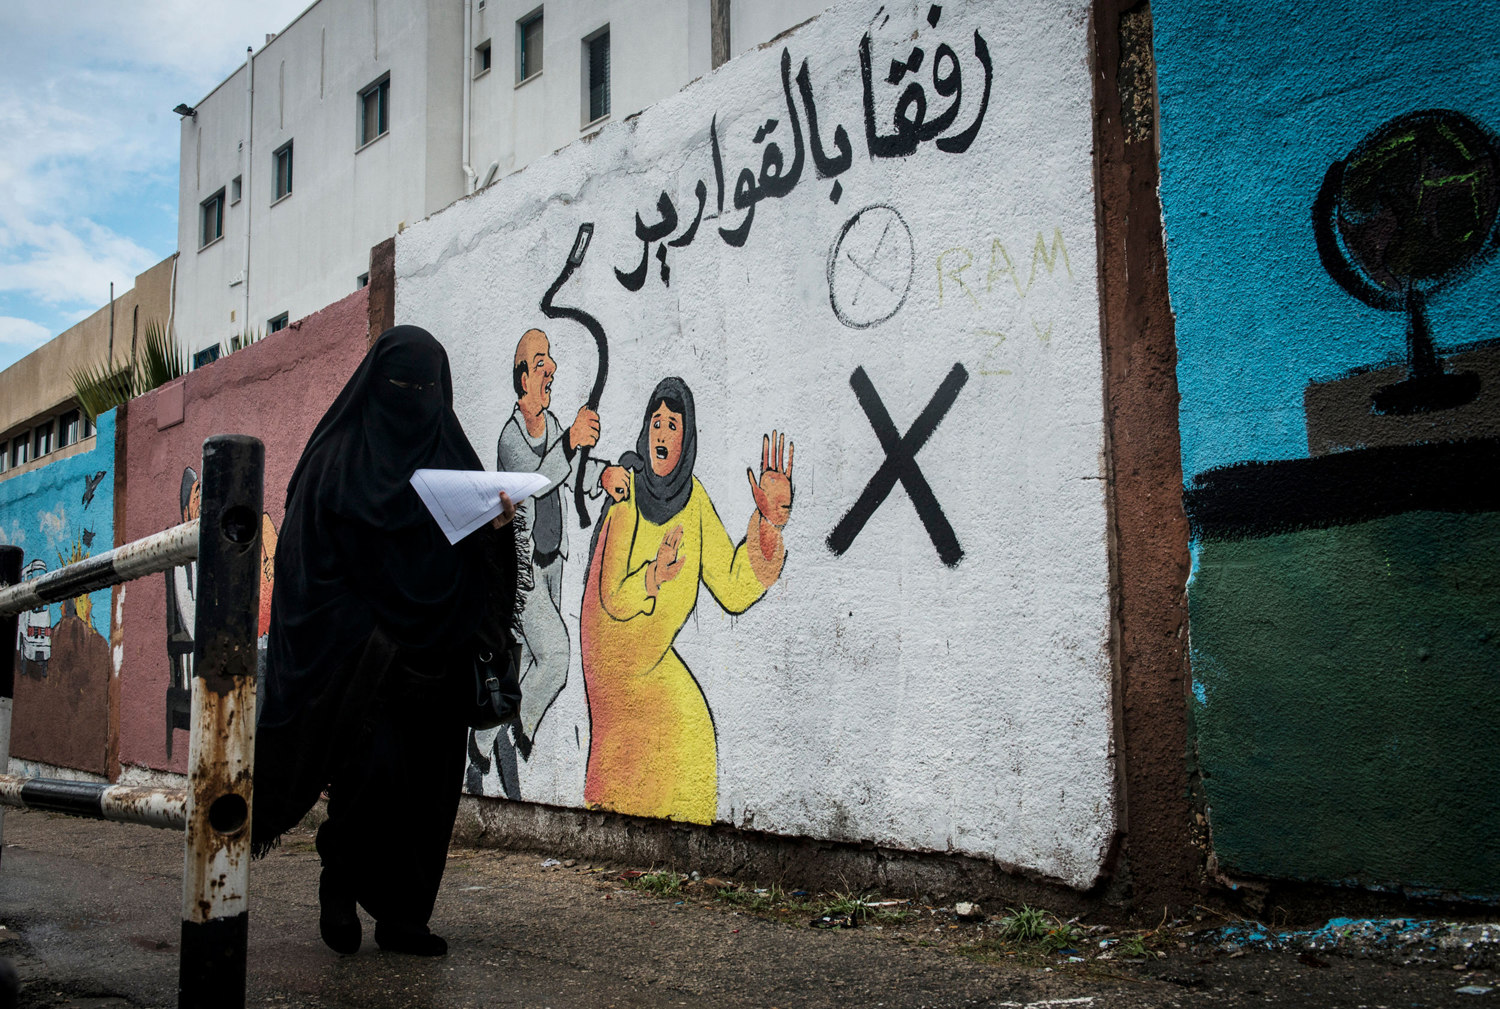 A woman walks by an mural discouraging domestic violence outside if Al-Shifa hospital. According to a 2012 study, some 37% of women are subjected to domestic violence by their husbands.